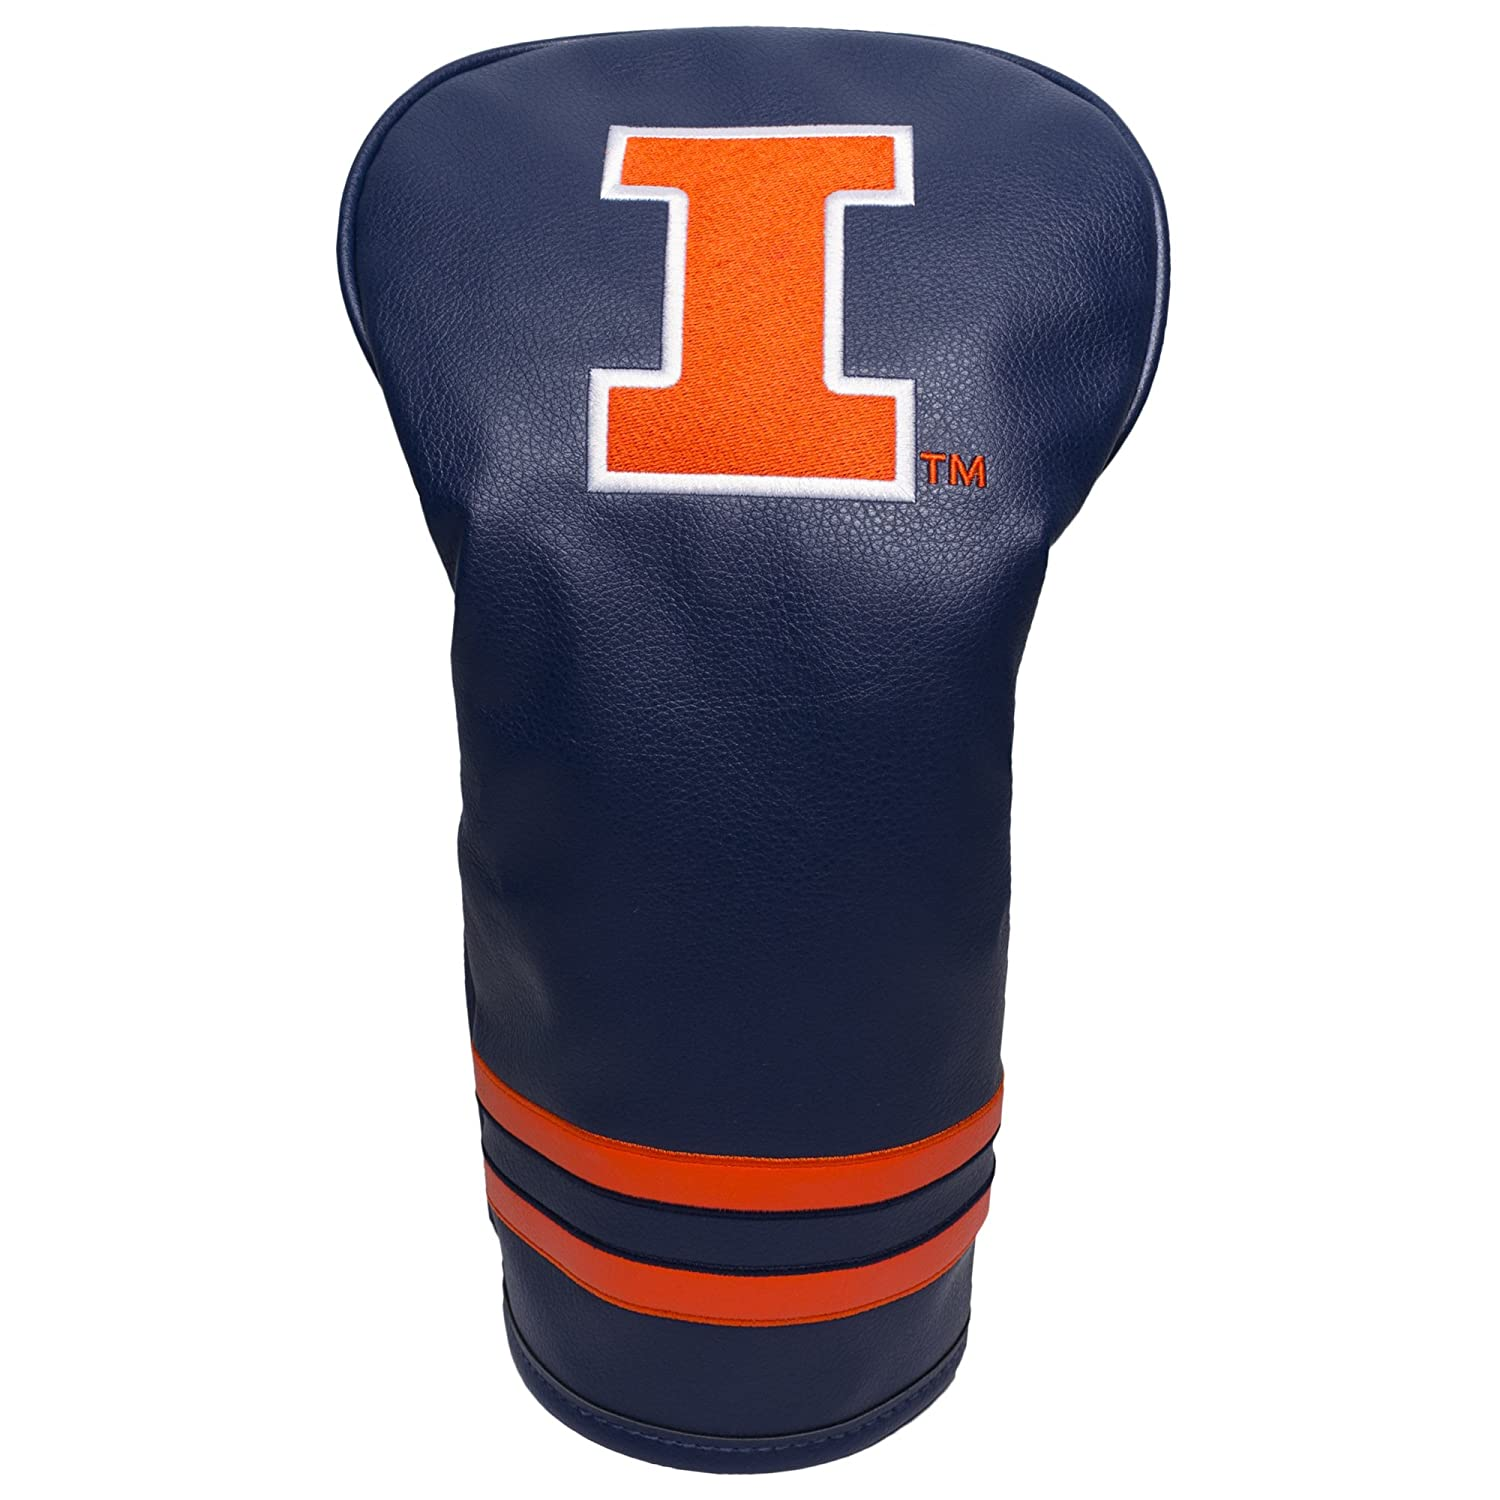 【おまけ付】 NCAAヴィンテージドライバーヘッドカバー Illini B06XXFYFG2 Illinois B06XXFYFG2 Fighting Fighting Illini, オールドギア:887272bb --- vanhavertotgracht.nl